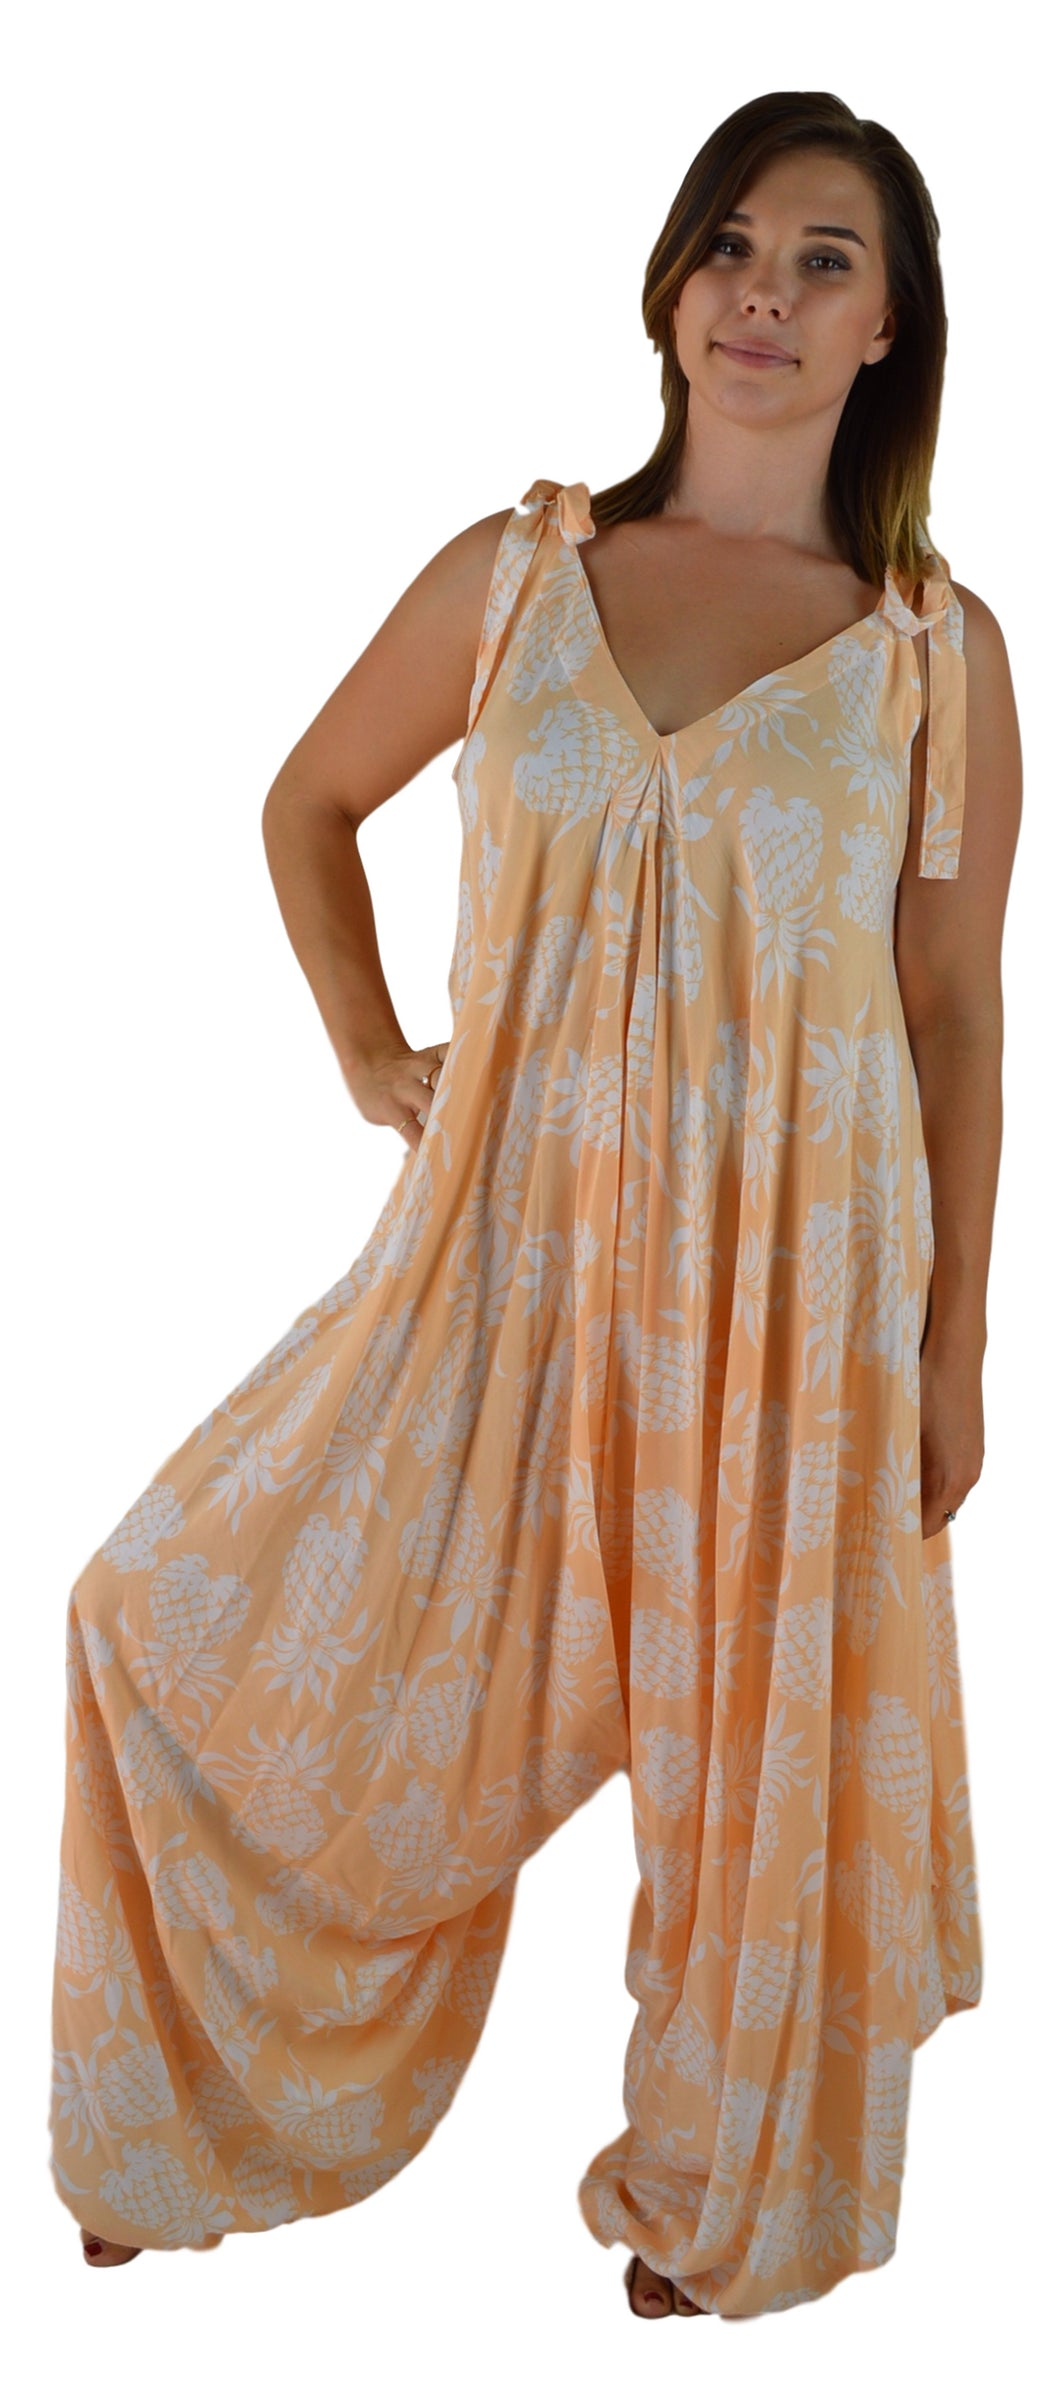 Secret Beach - Bali Jumper - Pineapple - Bleached Apricot